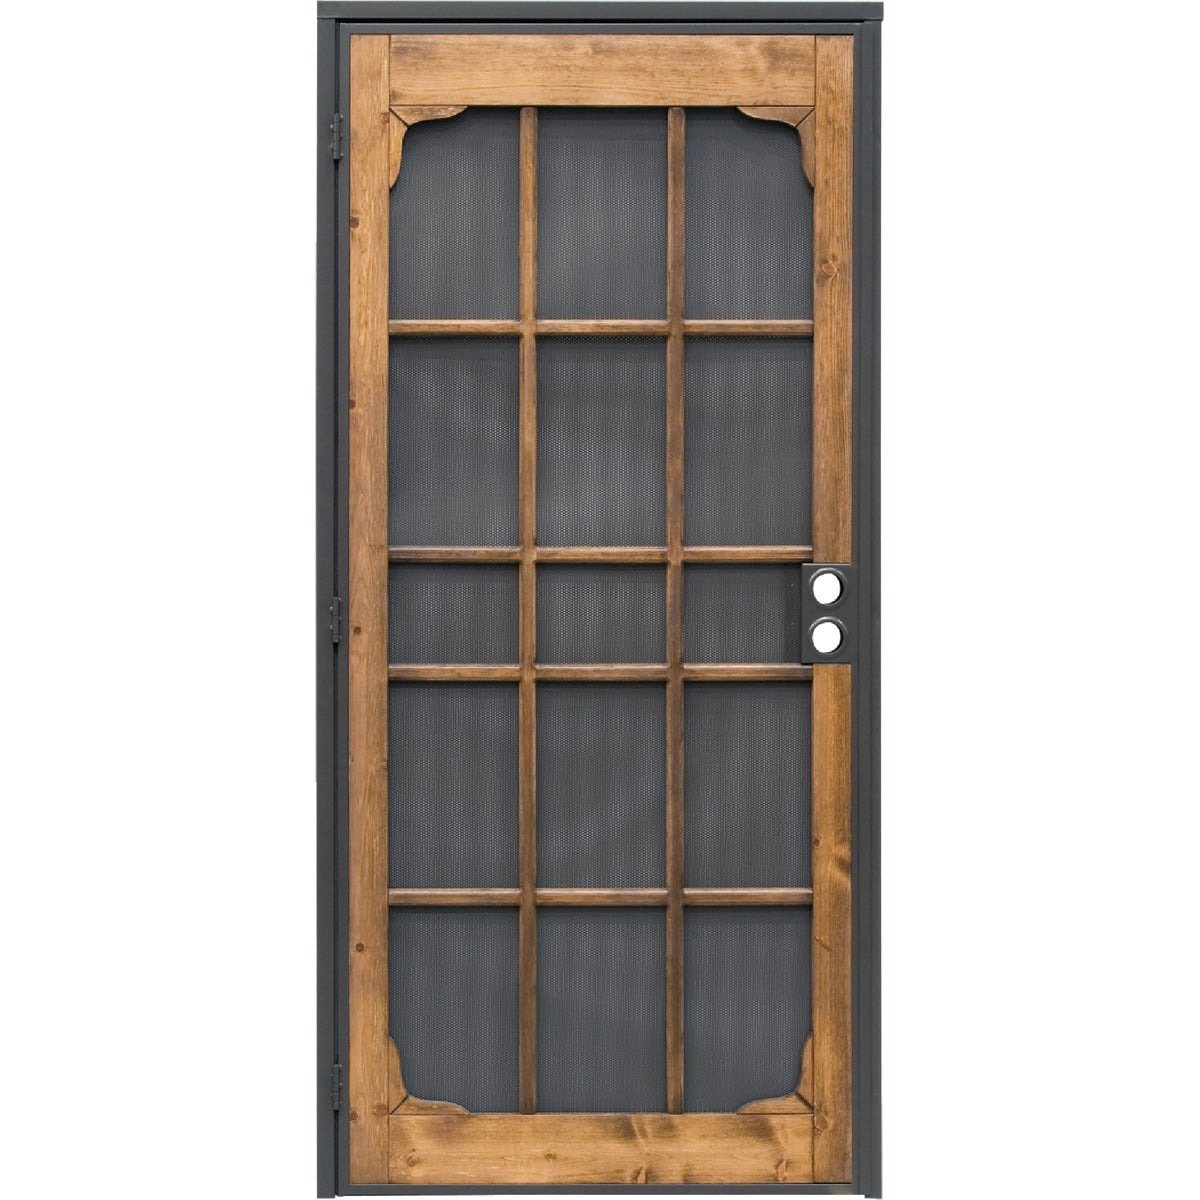 Item 160428, Steel security door power coated in bronze with matching 24 gauge perforated steel mesh for added security. Features 3/4-inch thick pine wood insert with a light oak stain.